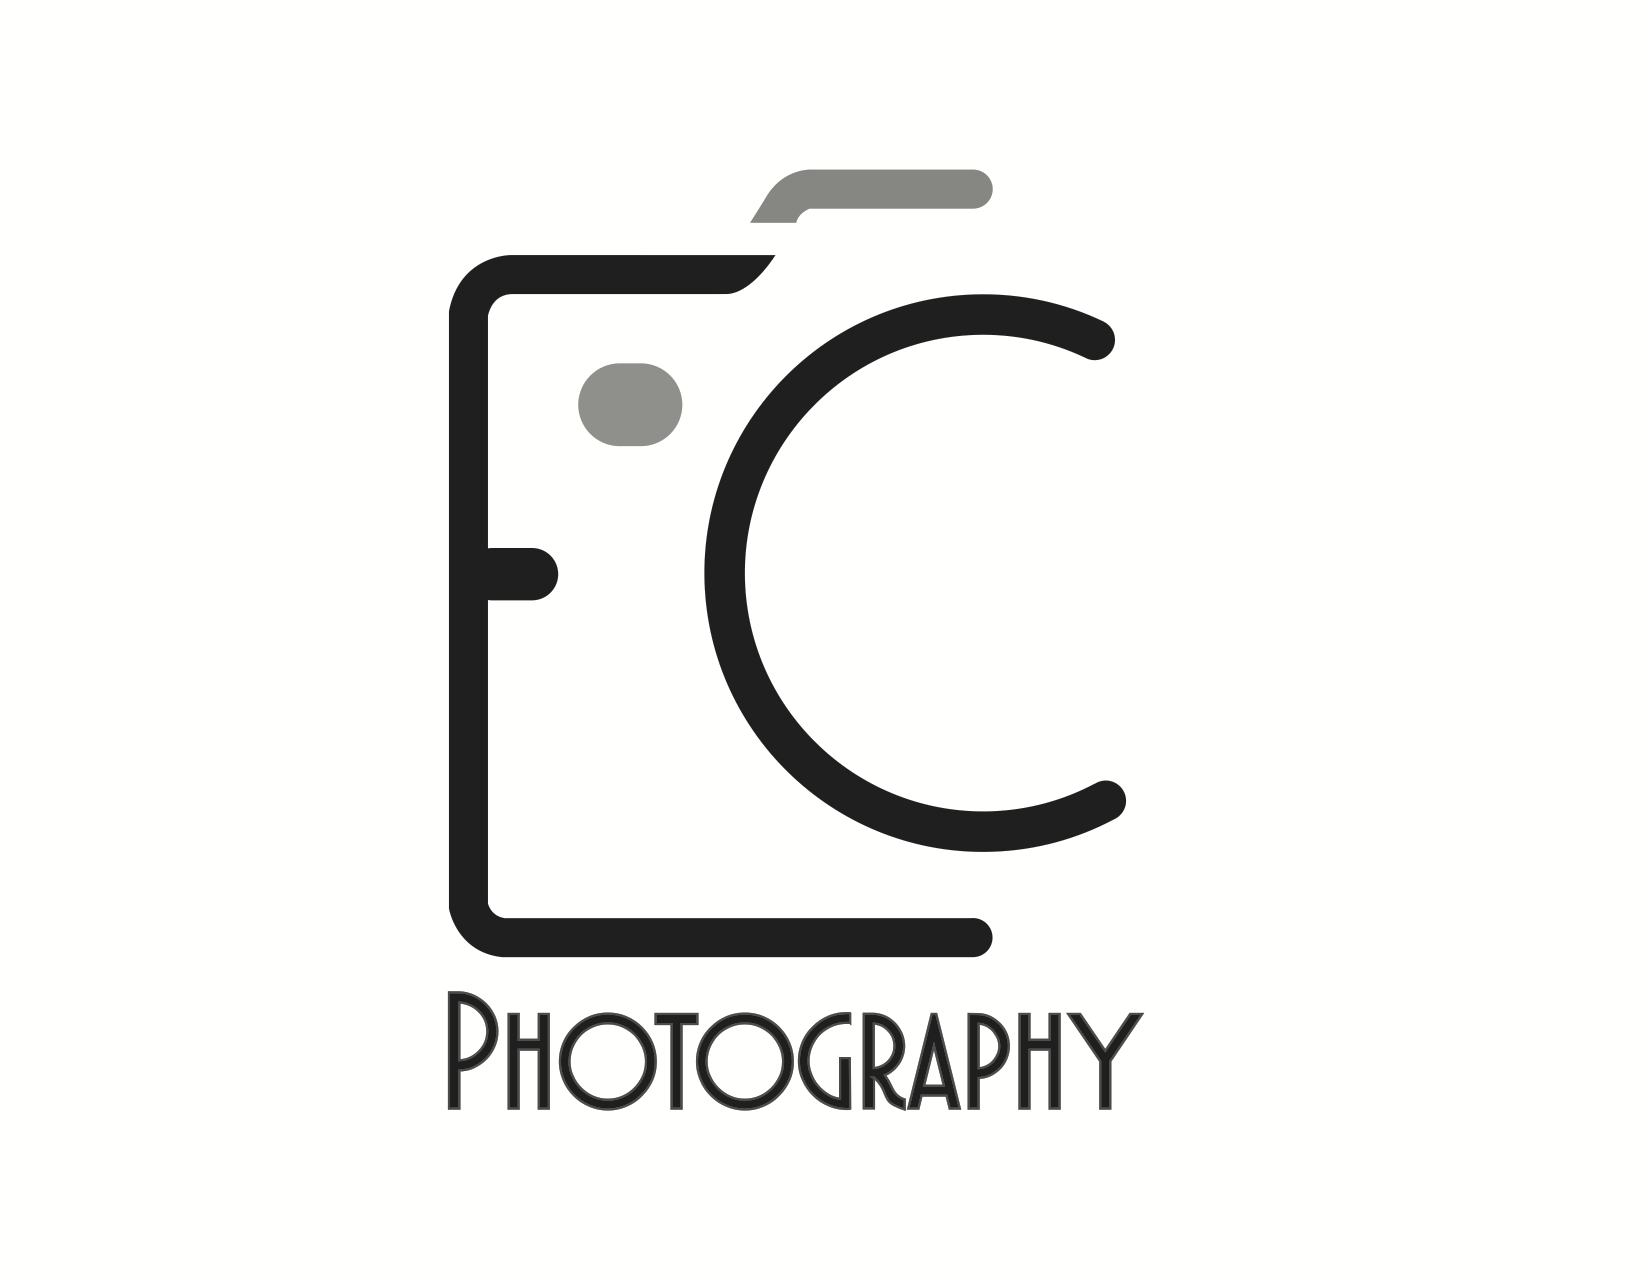 Ec photography my wordpress blog ec photography ec photography buycottarizona